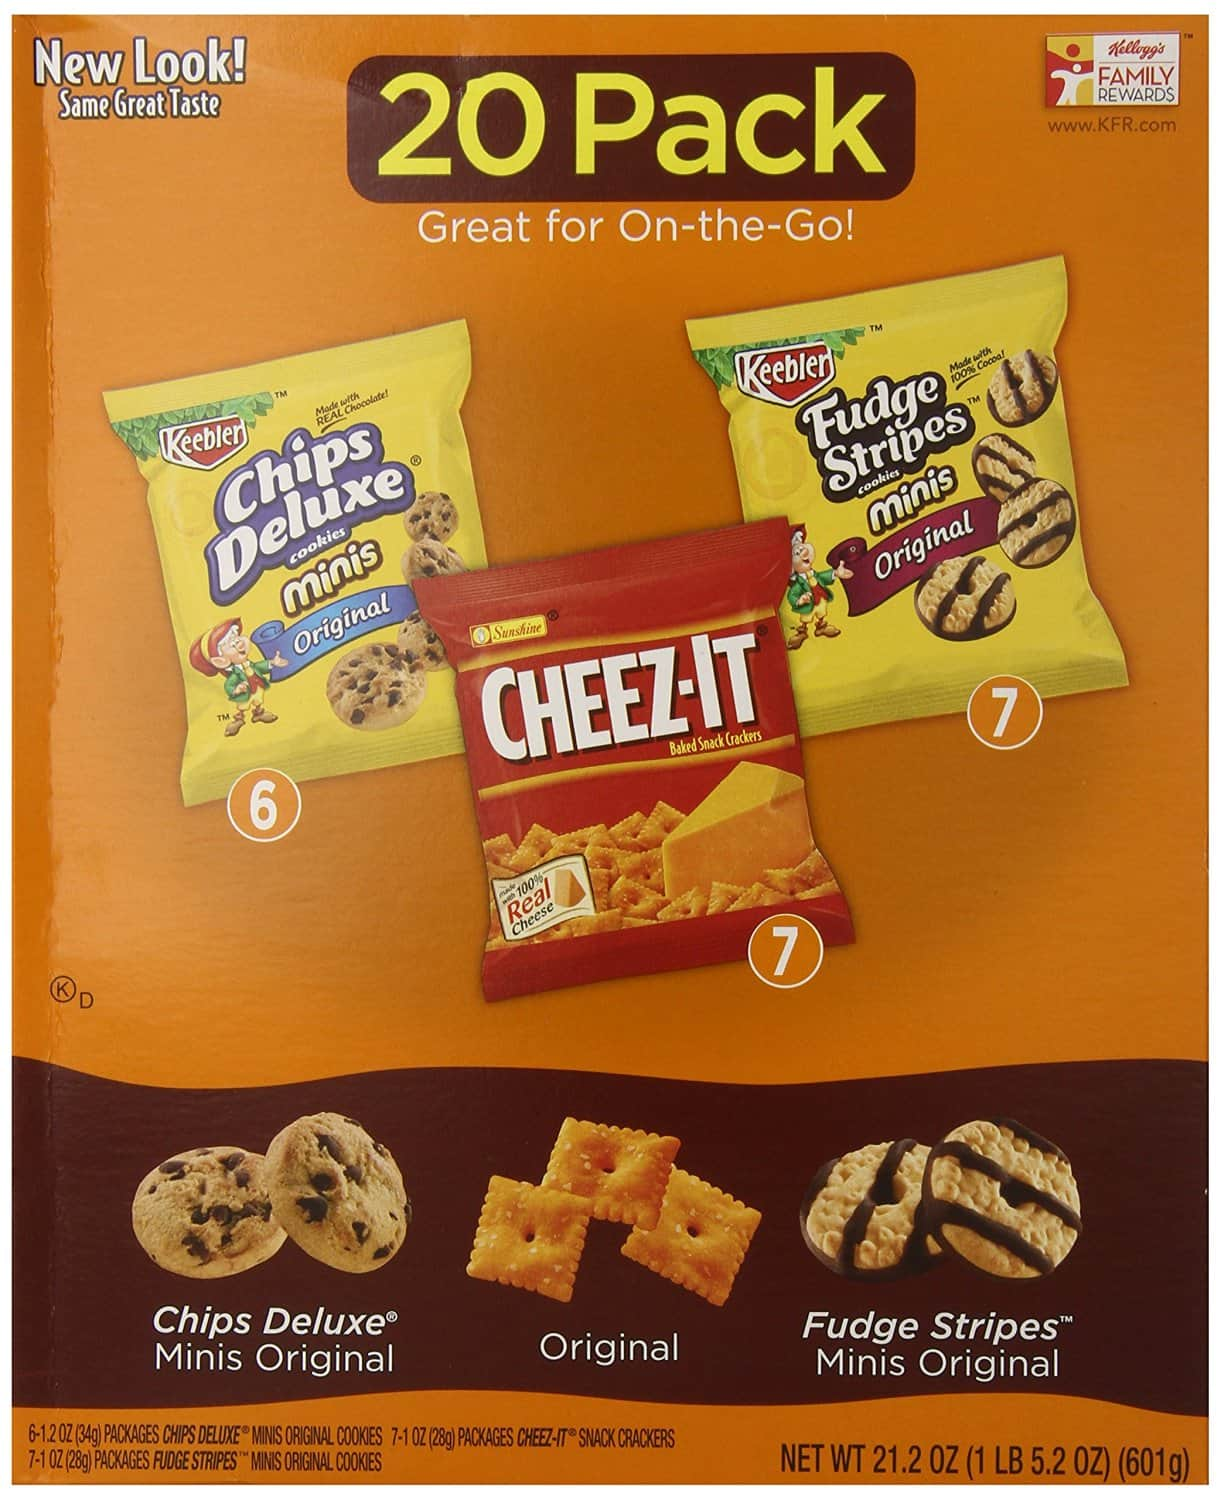 20-Pack 21.2-Oz Keebler Cookie & Cheez-It Variety Pack  $5.56 + Free Shipping